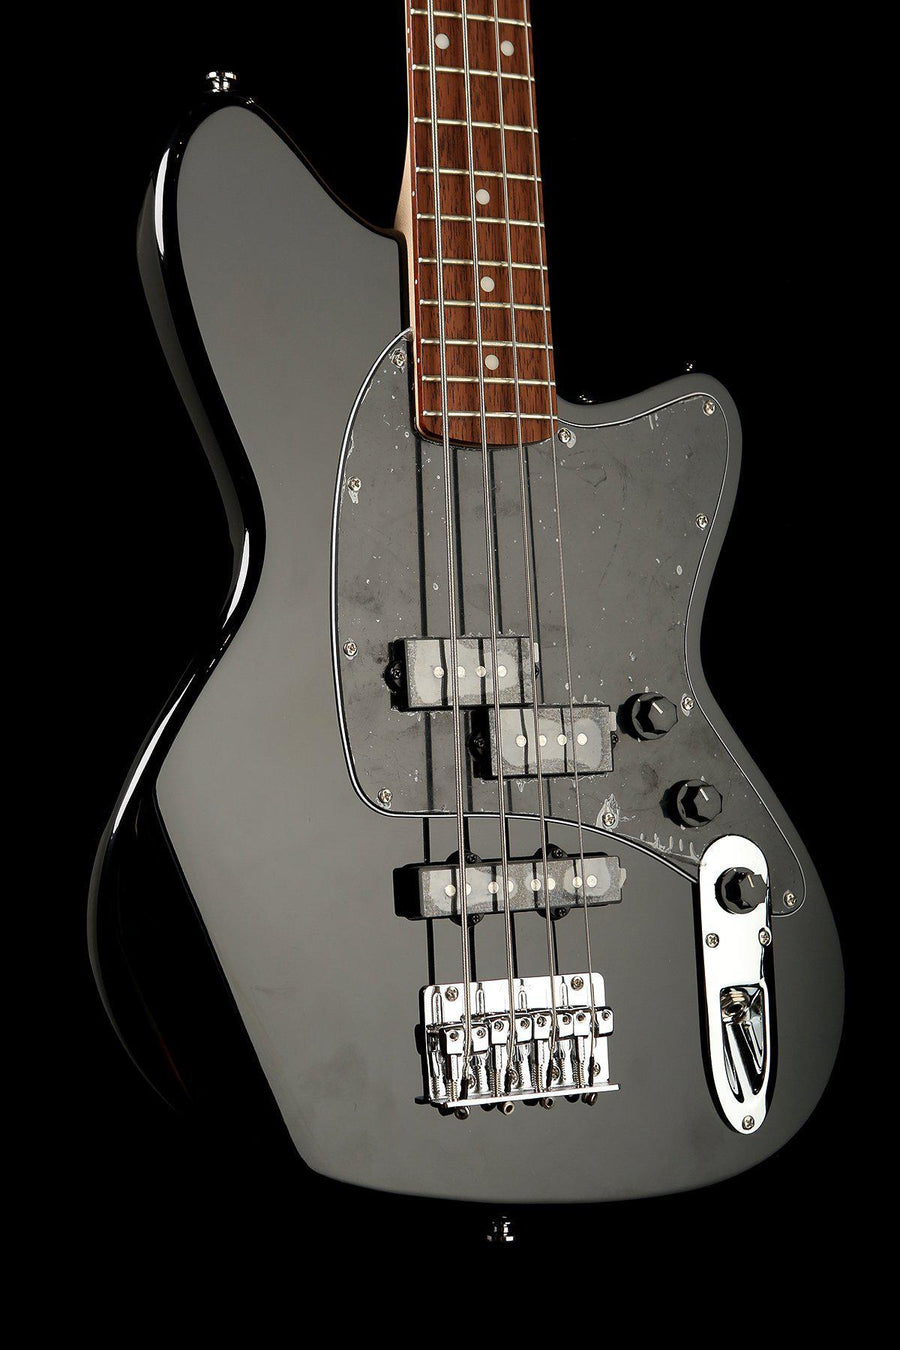 Bass Guitars - Ibanez TMB30 - Black